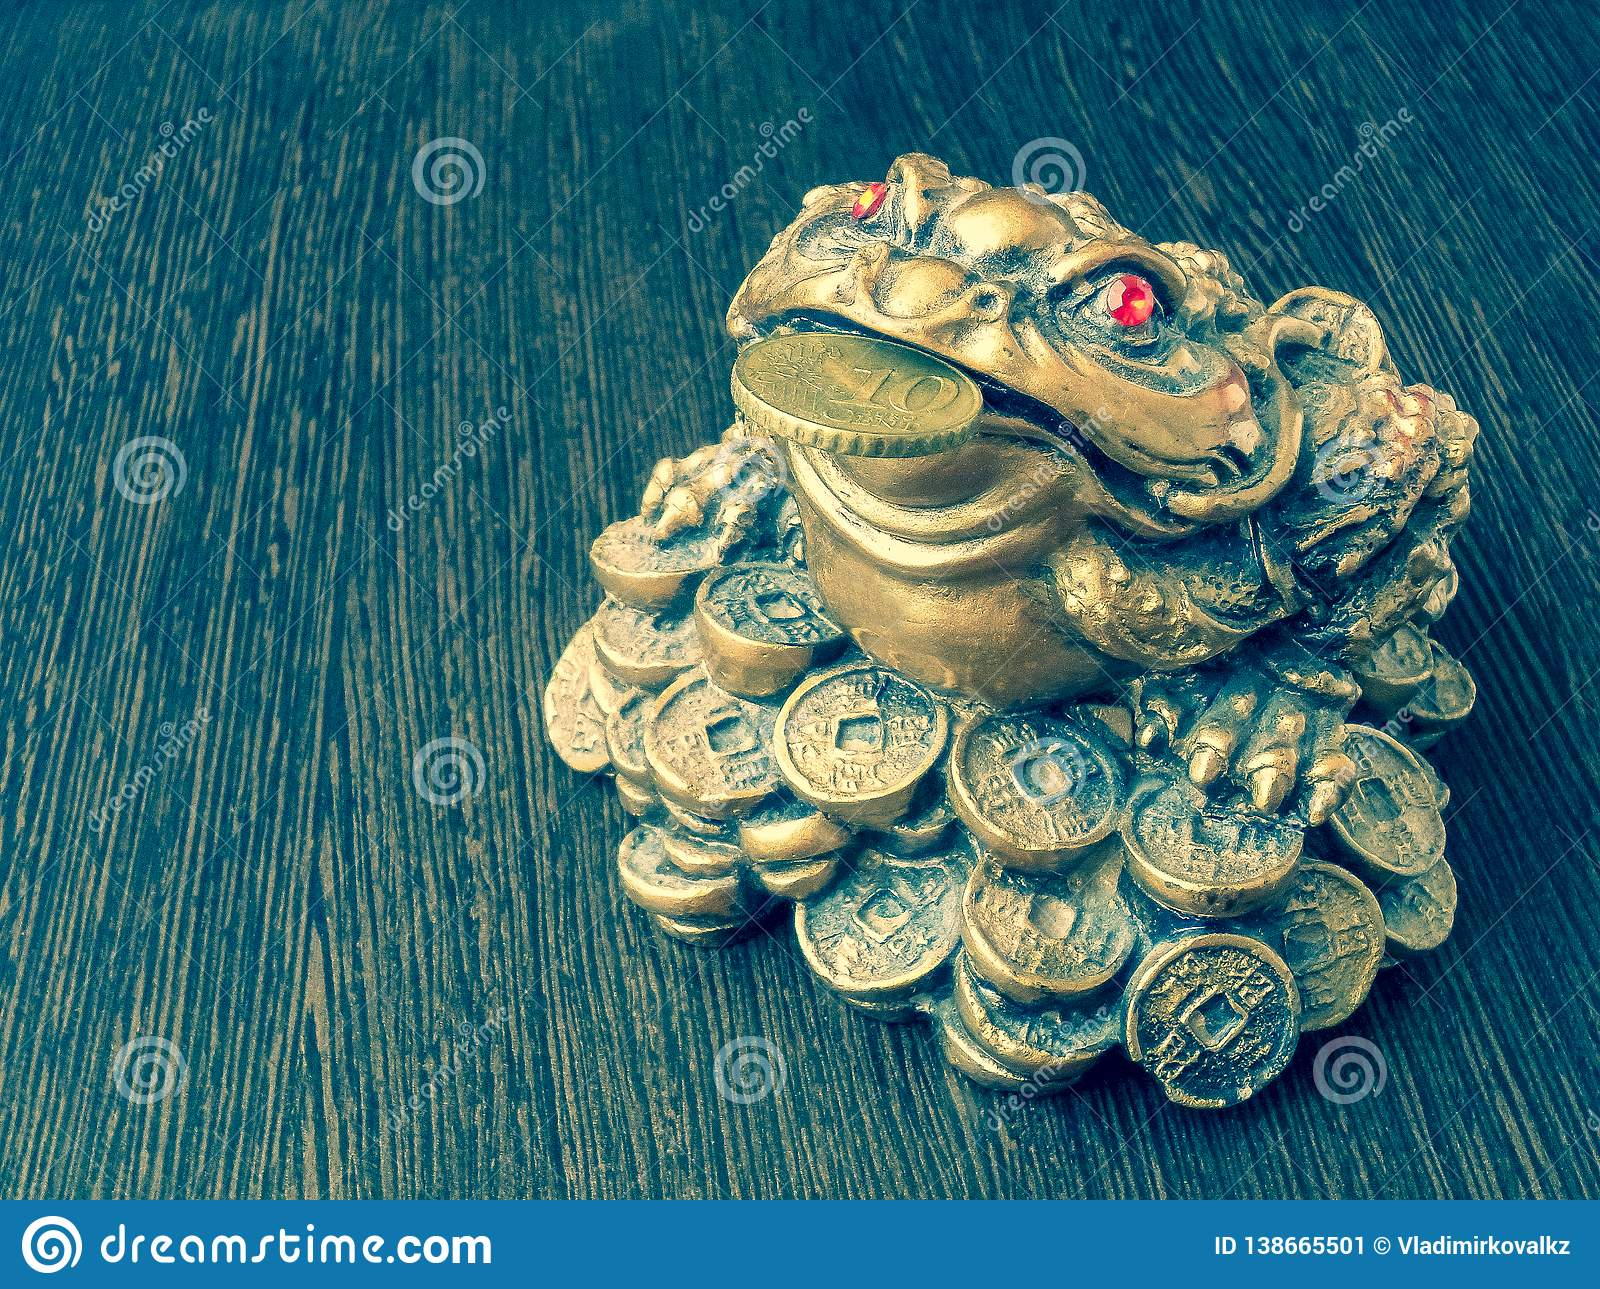 Money frog on a wooden table with a coin in its mouth